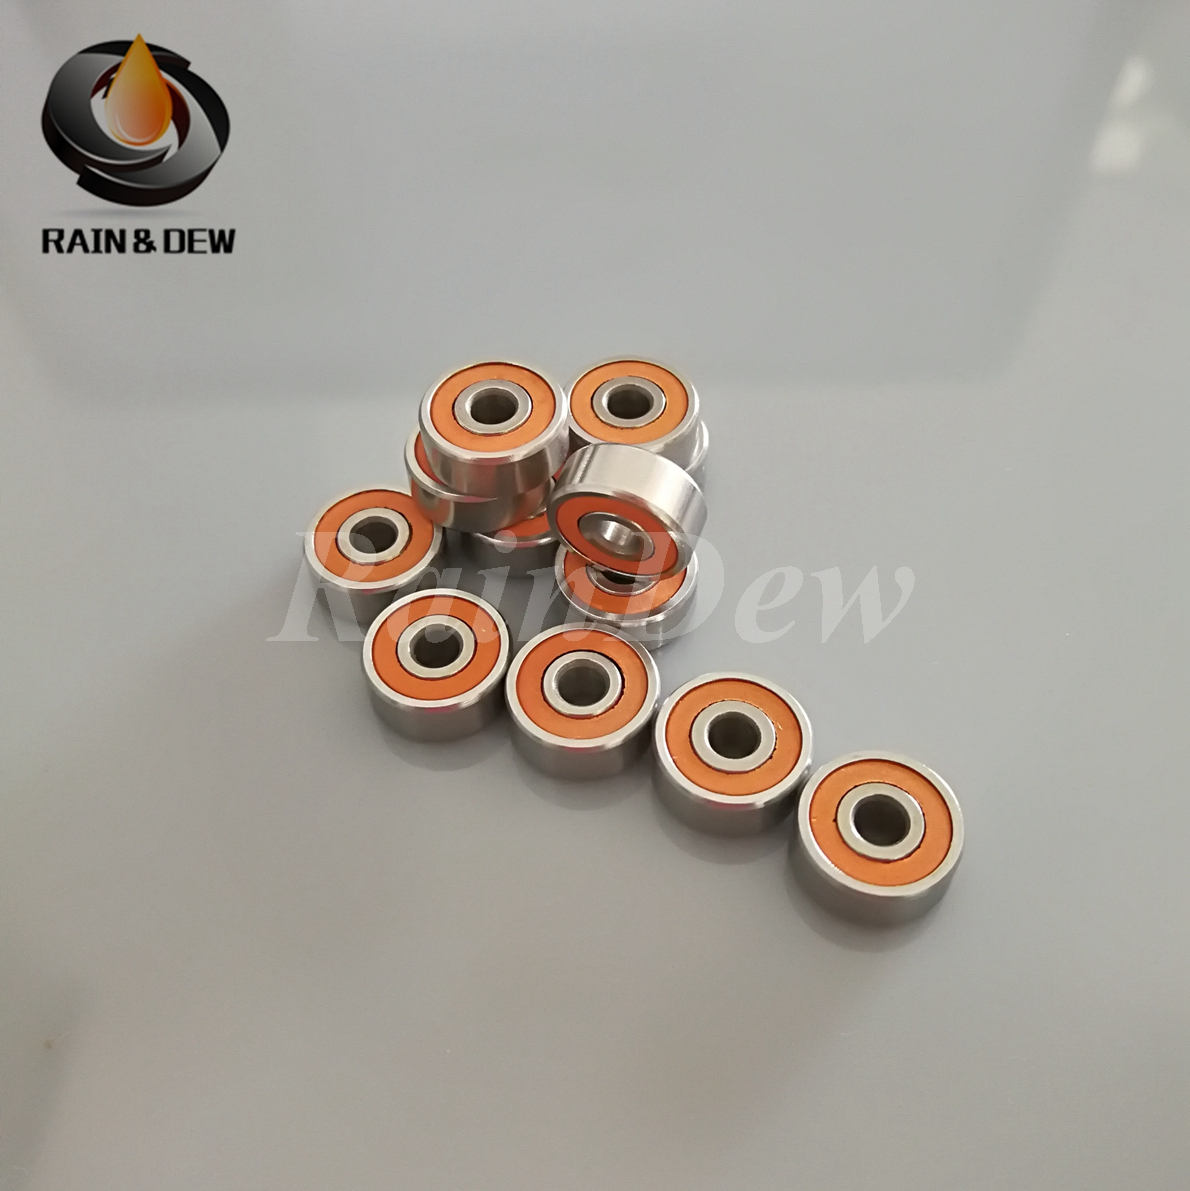 Free Shipping 10PCS SMR103 2OS CB ABEC7 3X10X4mm Stainless Steel Hybrid Ceramic Bearing SMR103-2RS SMR103C 2OS free shipping 1pc s699 2os cb abec7 9x20x6mm stainless steel hybrid ceramic bearings fishing reel bearings s699c 2os s699 2rs